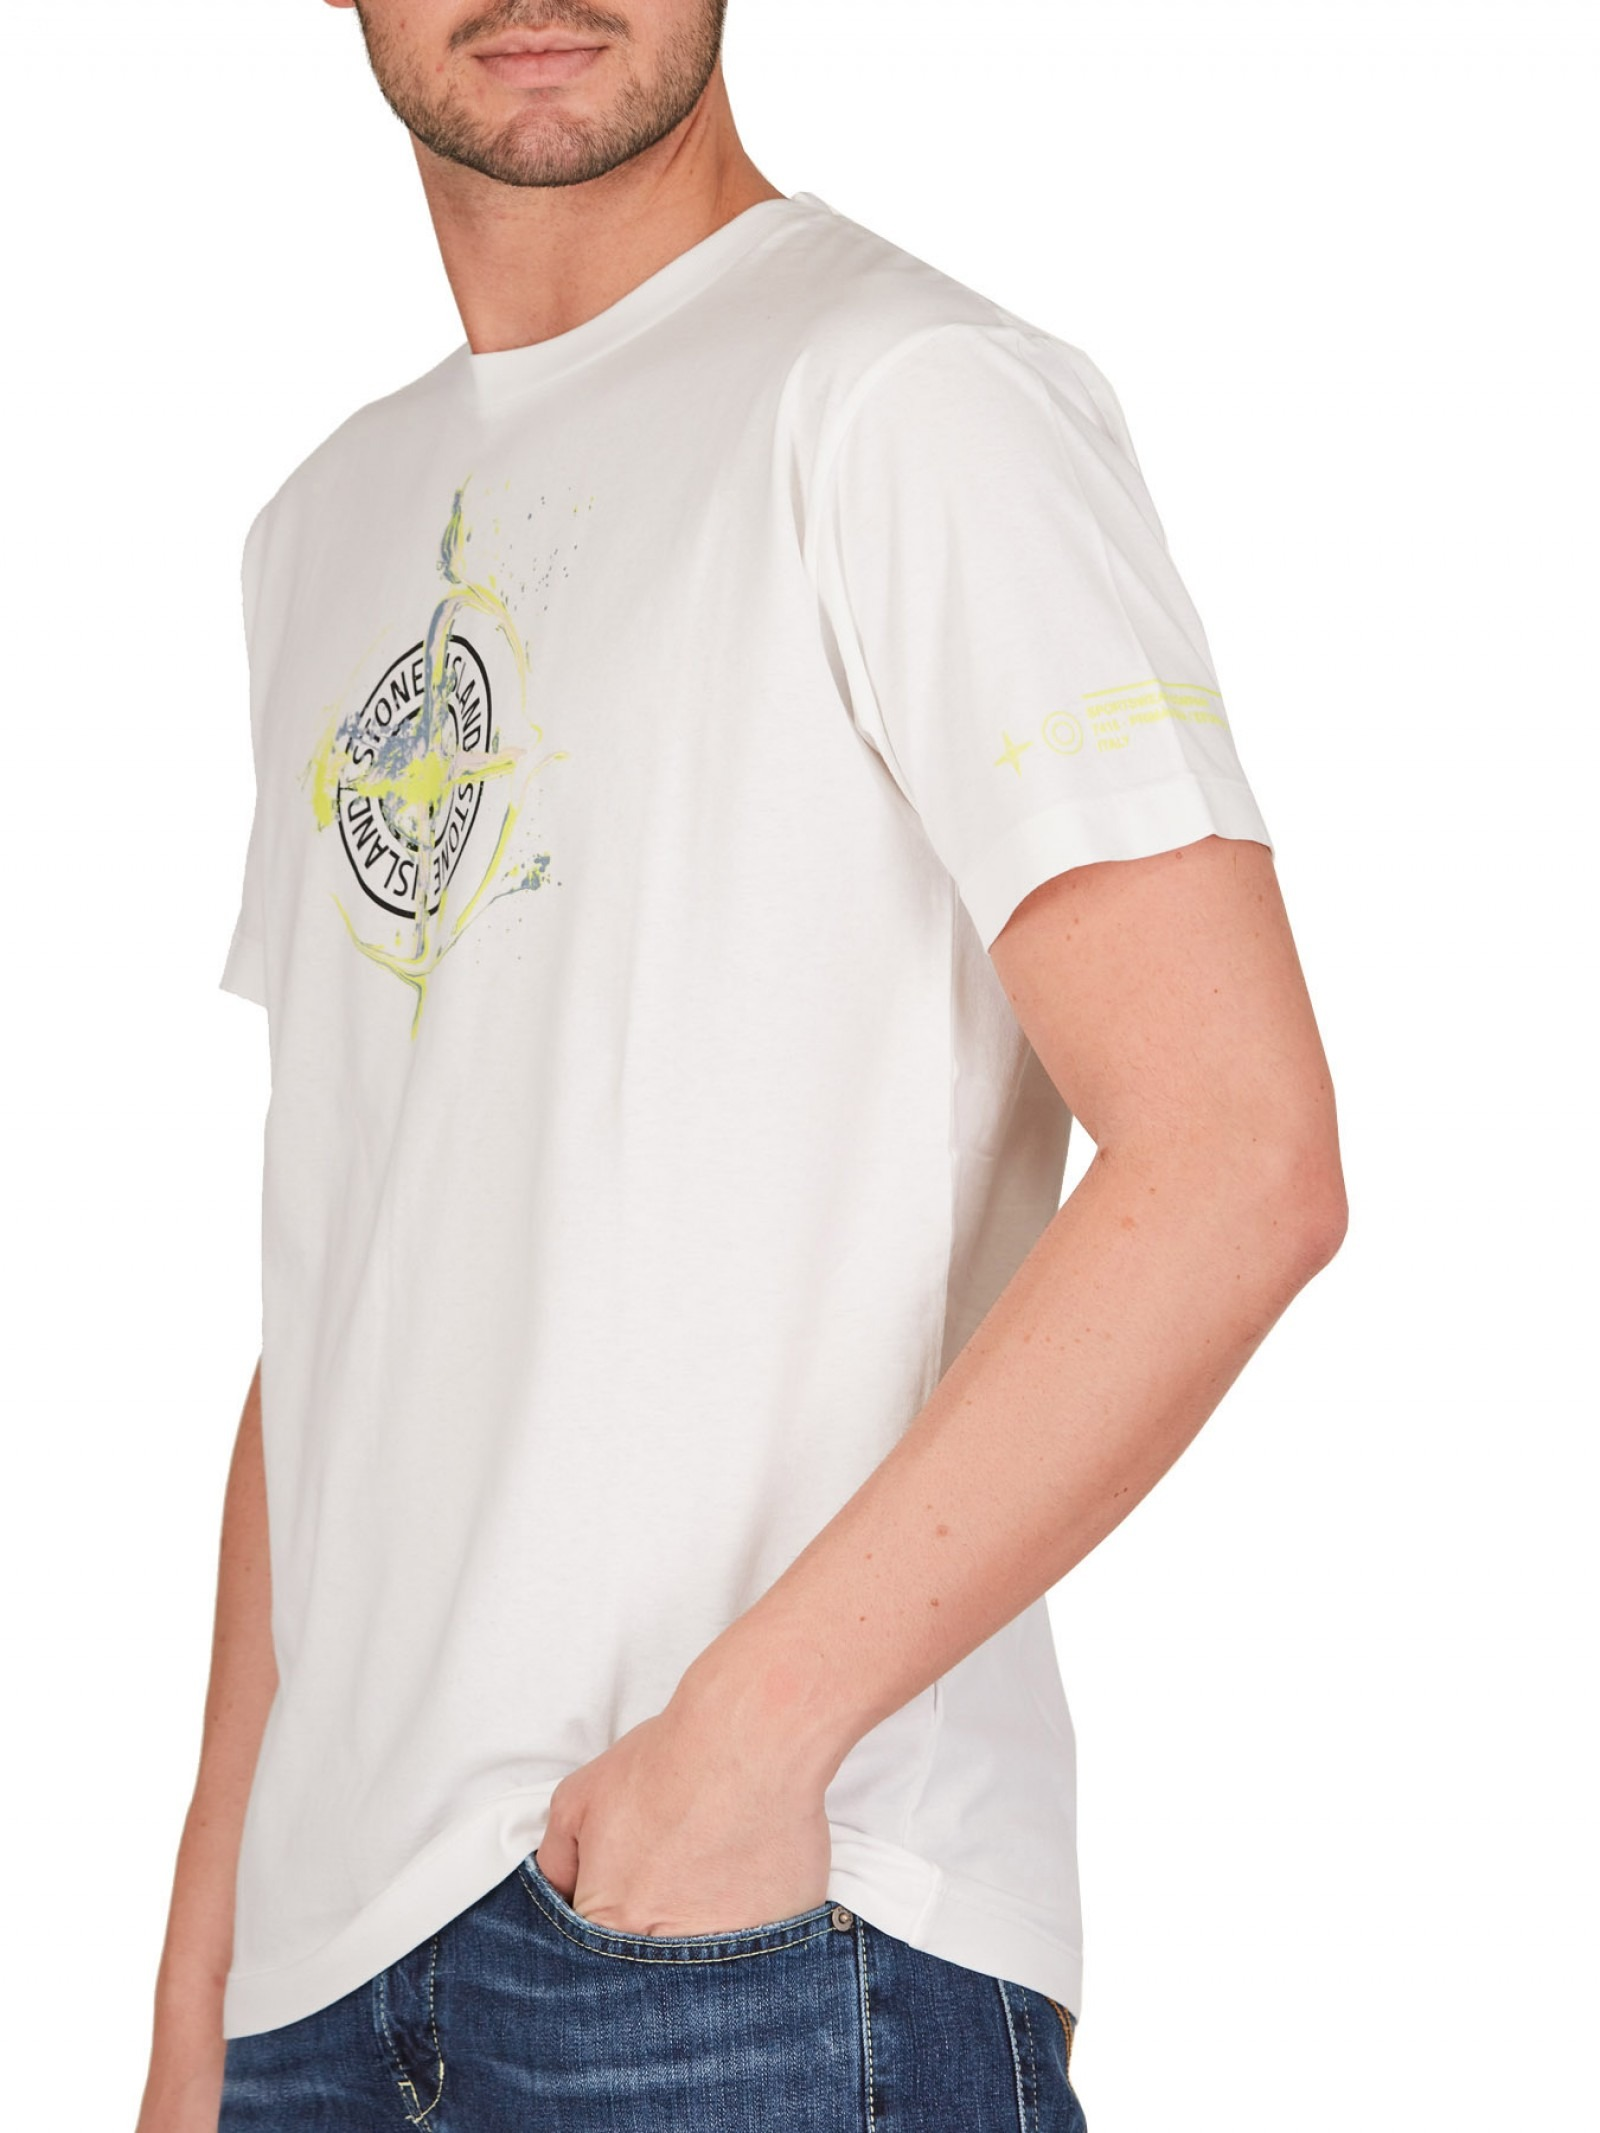 Stone Island - T shirt bianca in jersey con stampa - E9021 - 2NS83-V0001